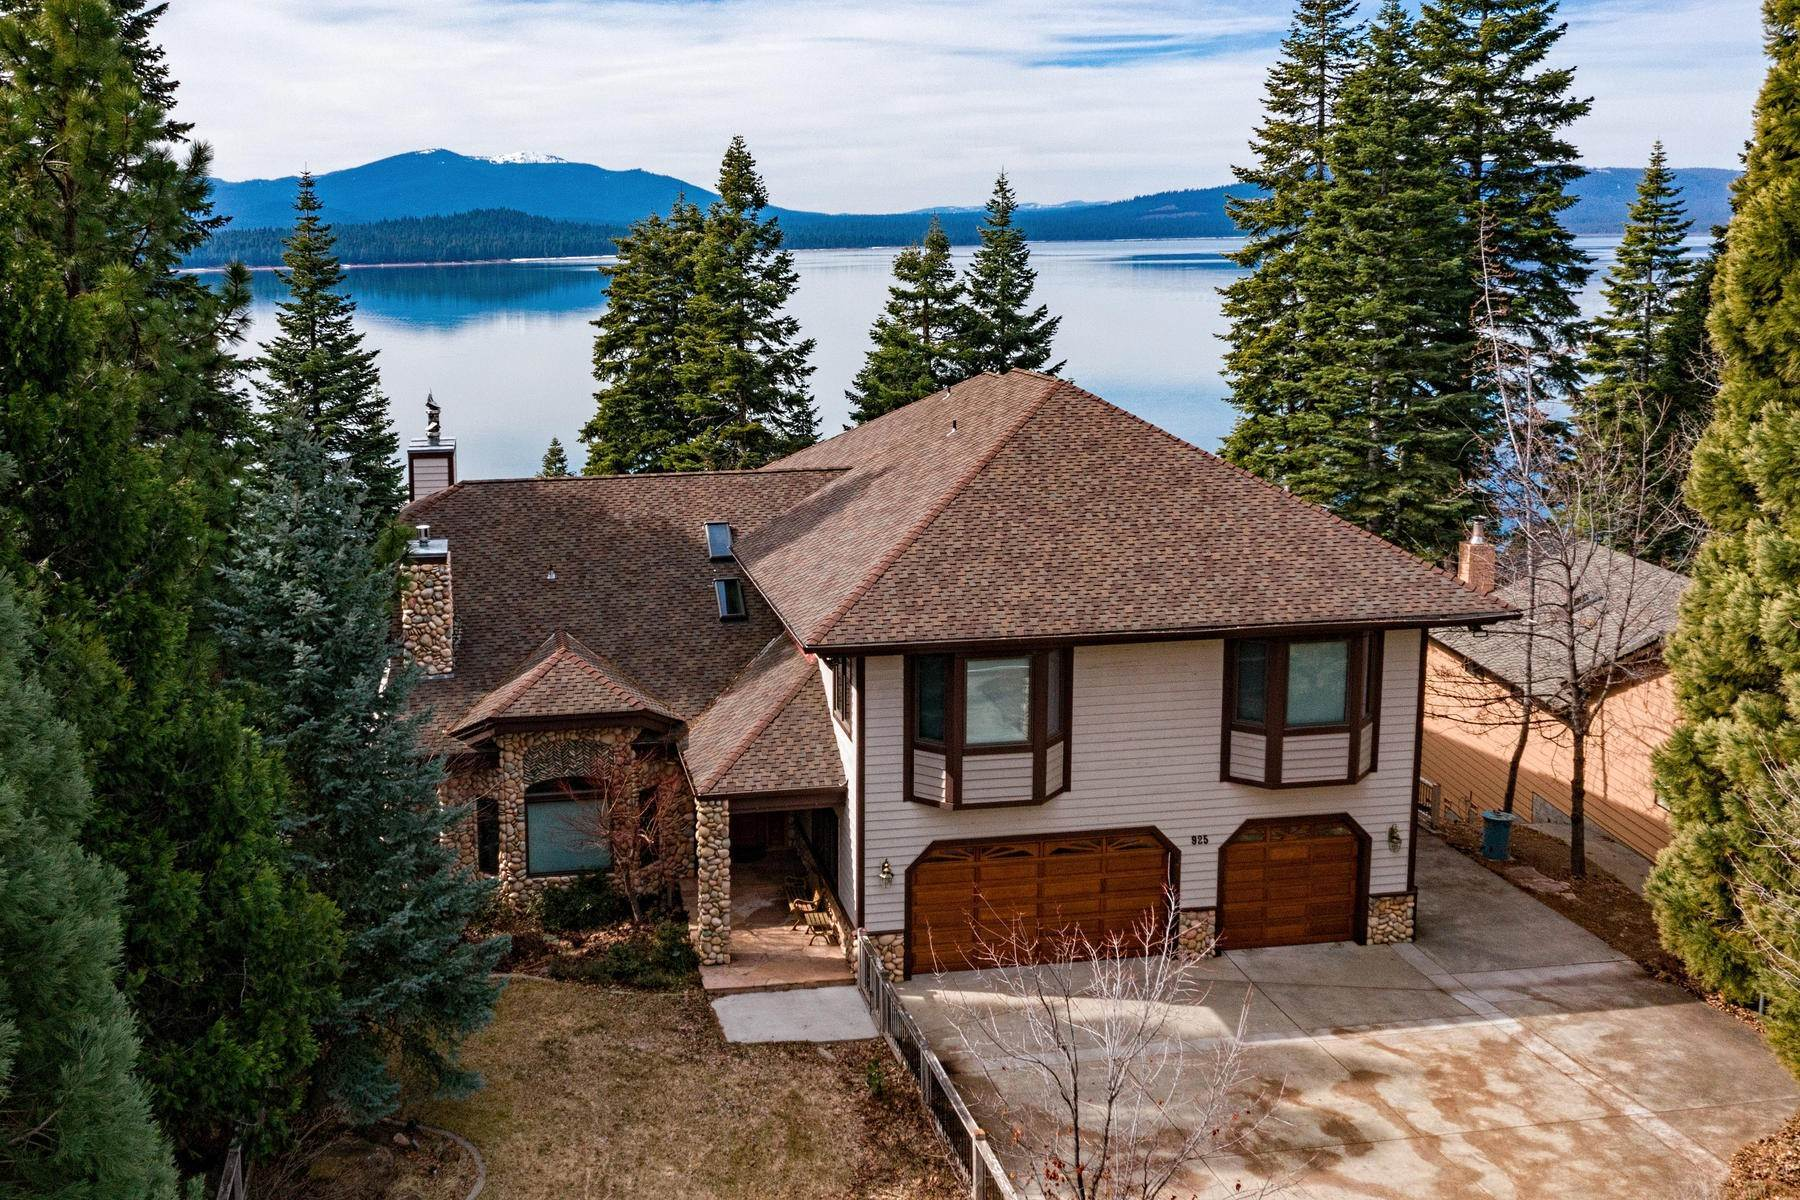 Single Family Homes for Active at Beautiful Lakefront Home 925 Lassen View Drive Lake Almanor, California 96137 United States